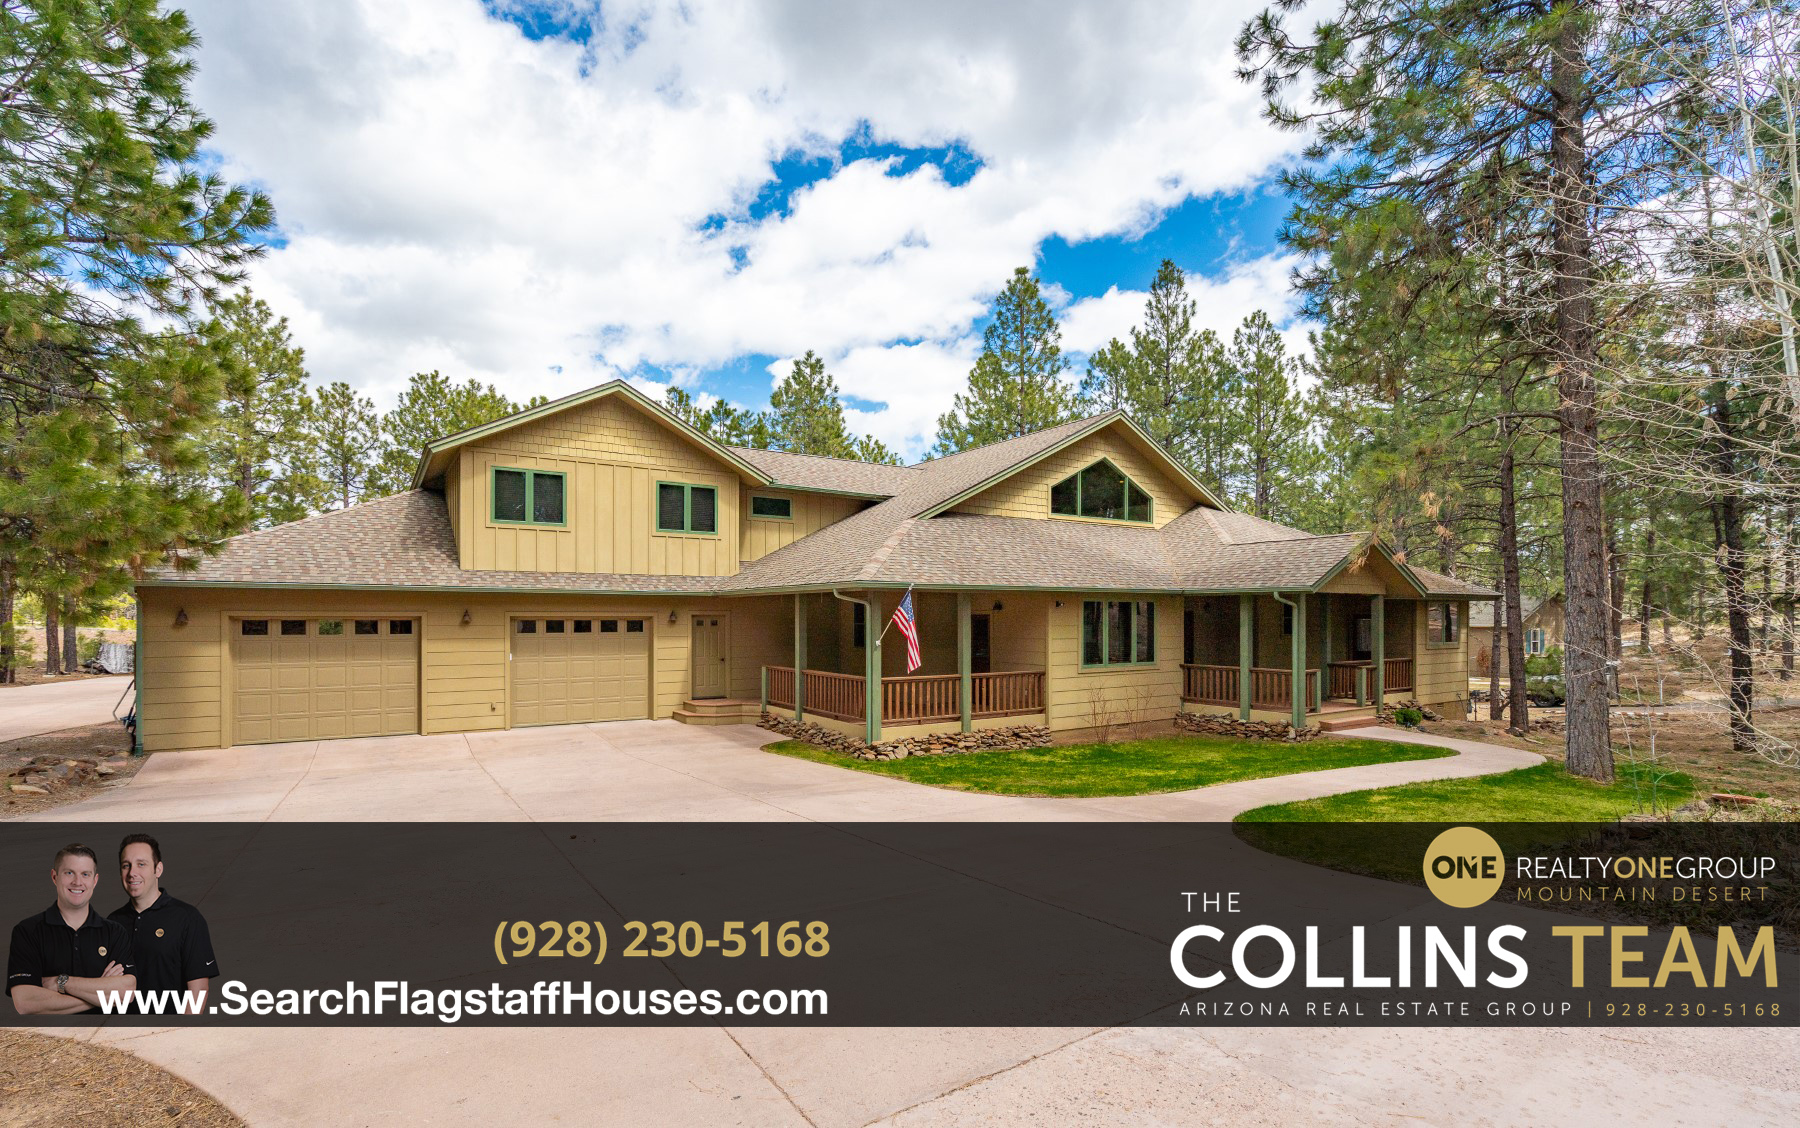 Westwood Estates Home for Sale in Flagstaff